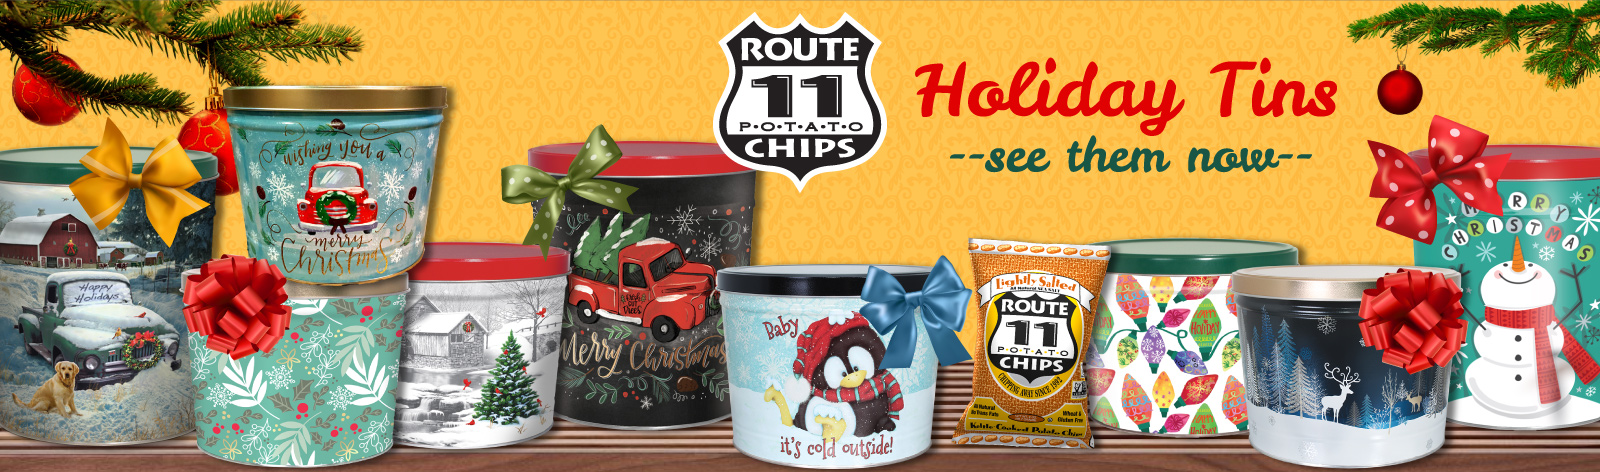 holiday tins of Route 11 Potato Chips